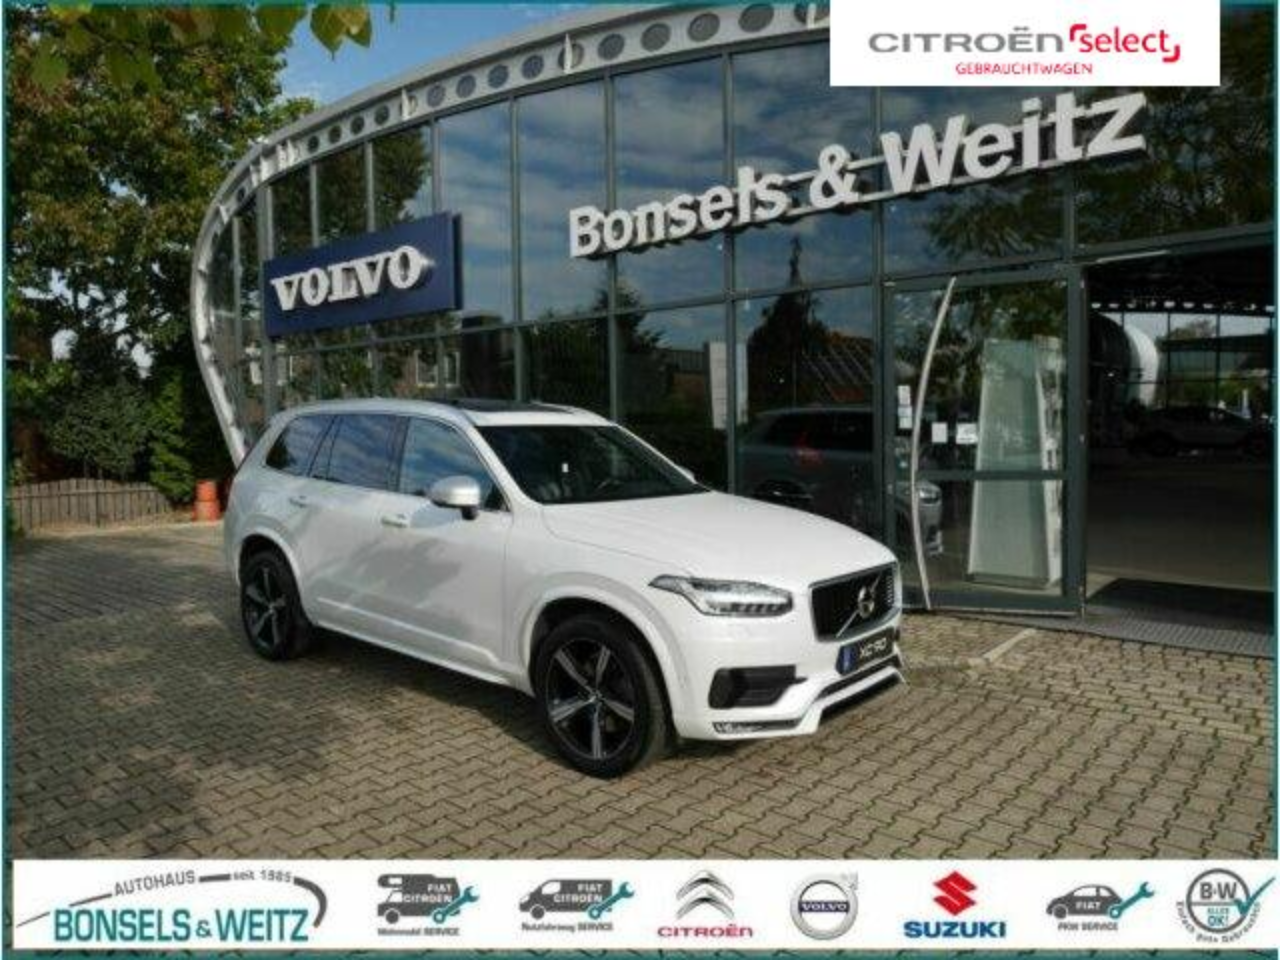 Volvo XC90 D5 AWD GEARTRONIC R-DESIGN 7-SITZER SD LED